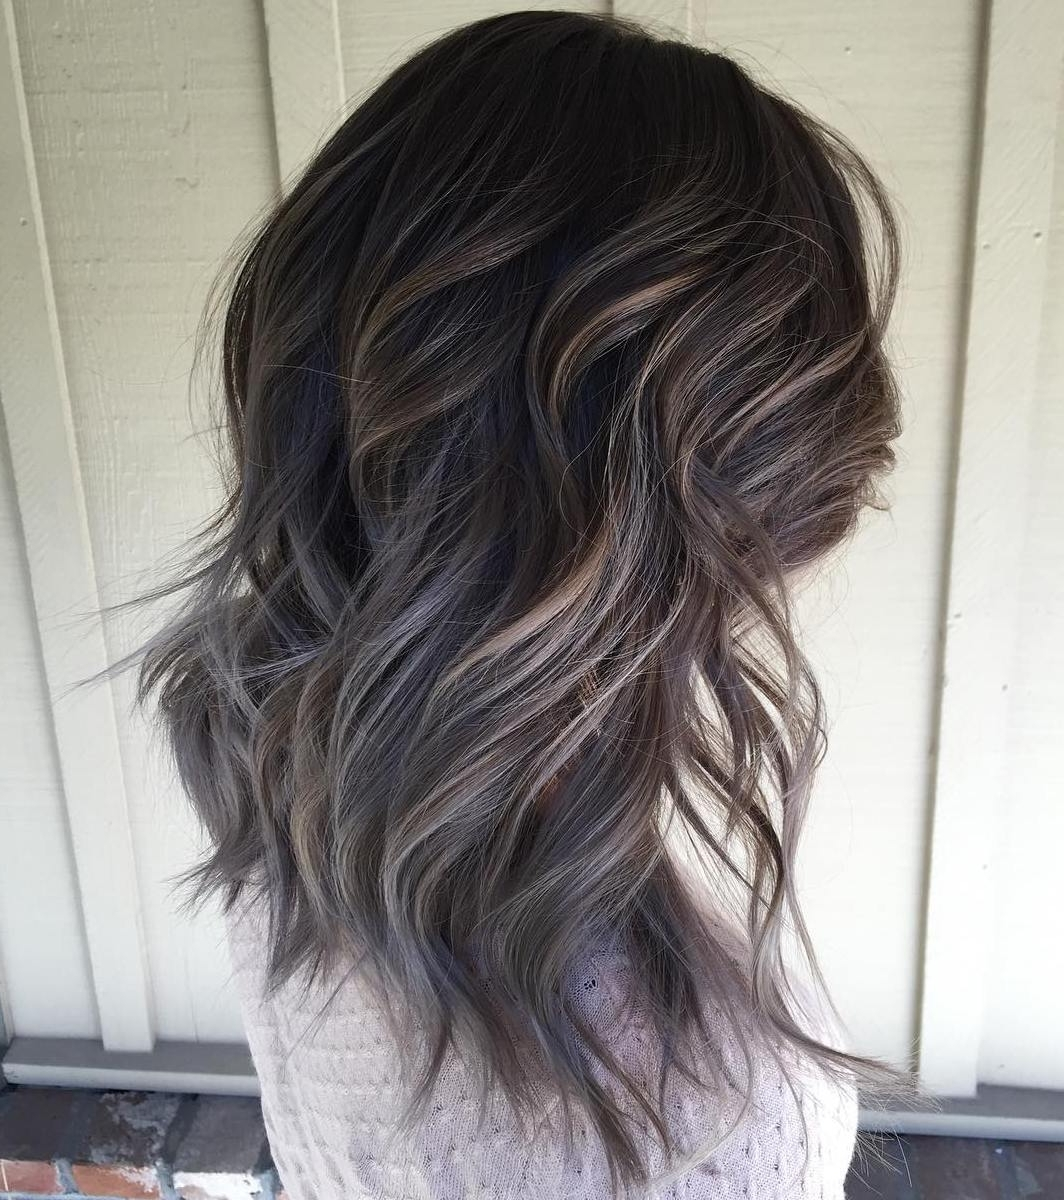 45 Ideas Of Gray And Silver Highlights On Brown Hair Inside Latest Dark Brown Hair Hairstyles With Silver Blonde Highlights (View 4 of 20)